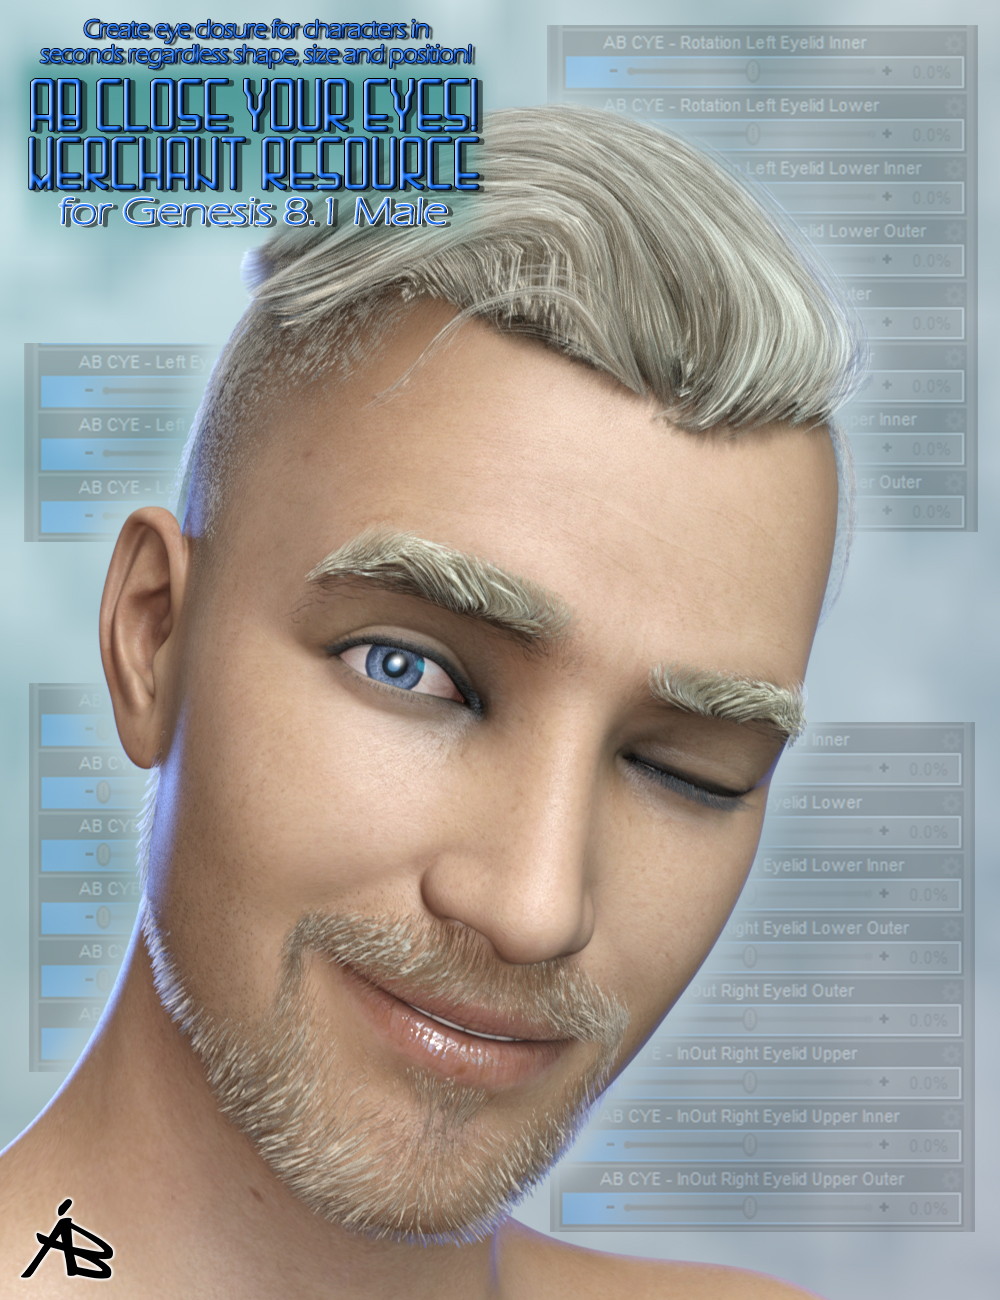 AB Close Your Eyes! for Genesis 8.1 Male (MR) by: AuraBianca, 3D Models by Daz 3D